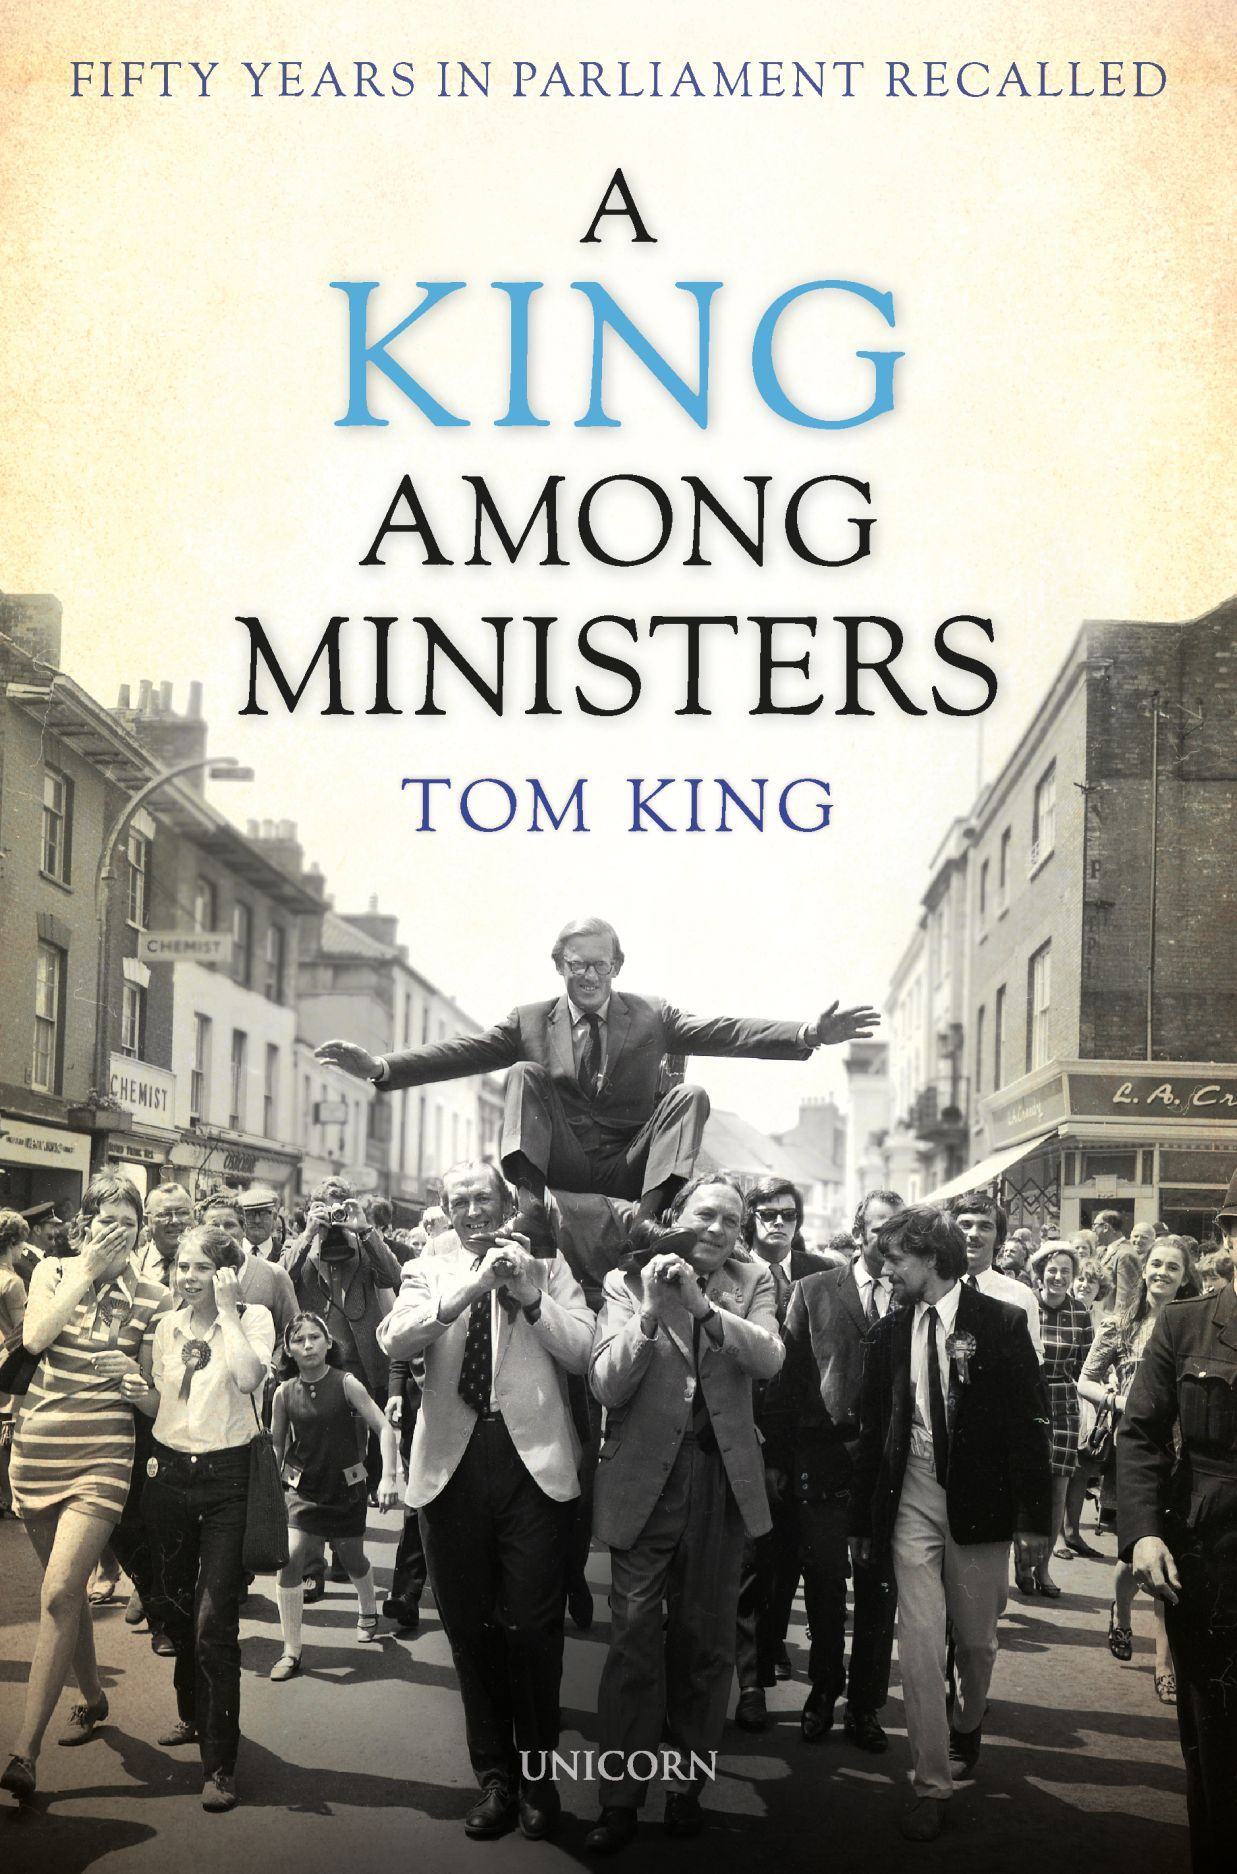 A King Among Ministers: Fifty Years in Parliament Recalled